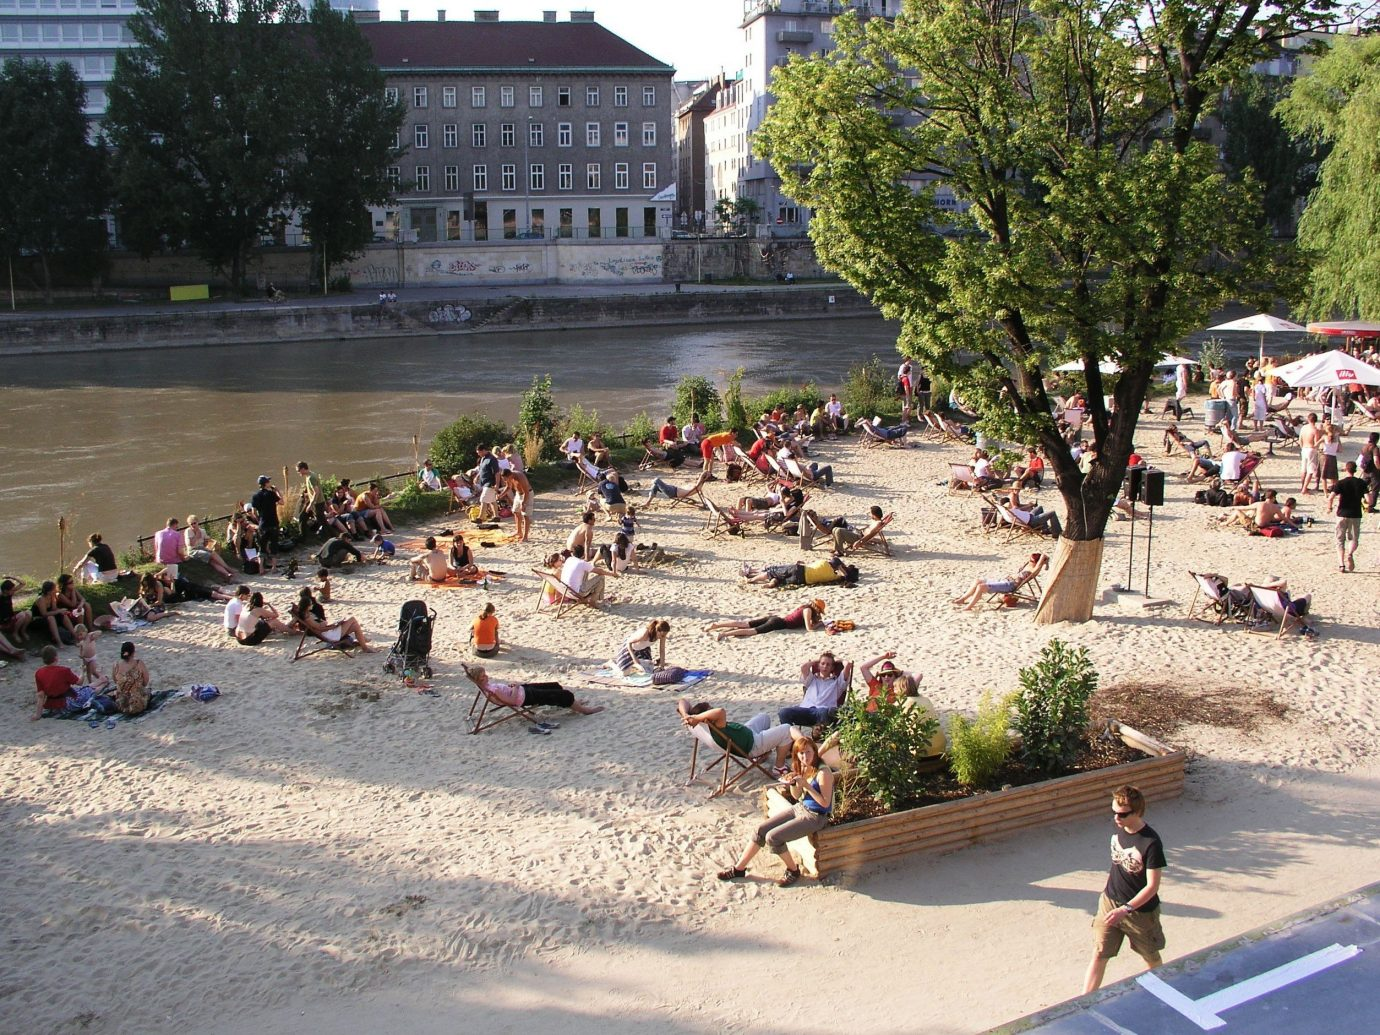 Trip Ideas outdoor tree people town square plaza group tourism walkway shore cement several